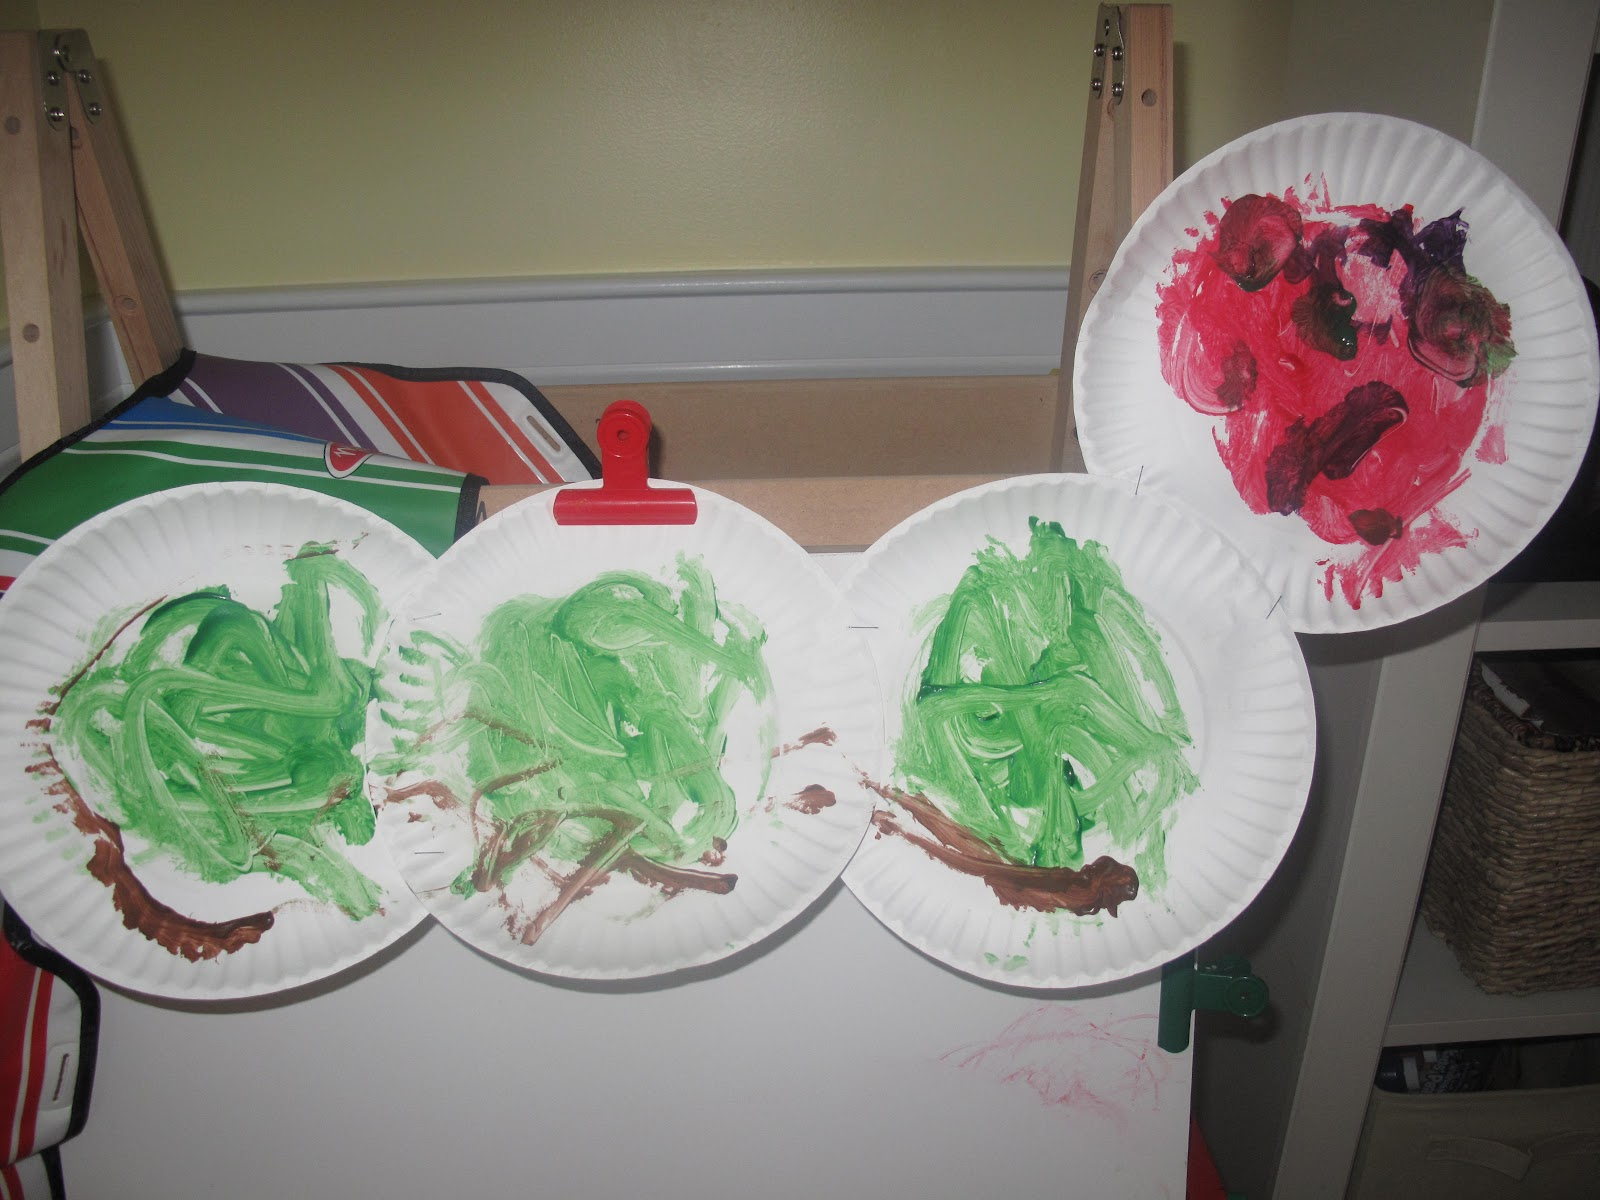 & The Very Hungry Caterpillar Paper Plate Craft - The Chirping Moms